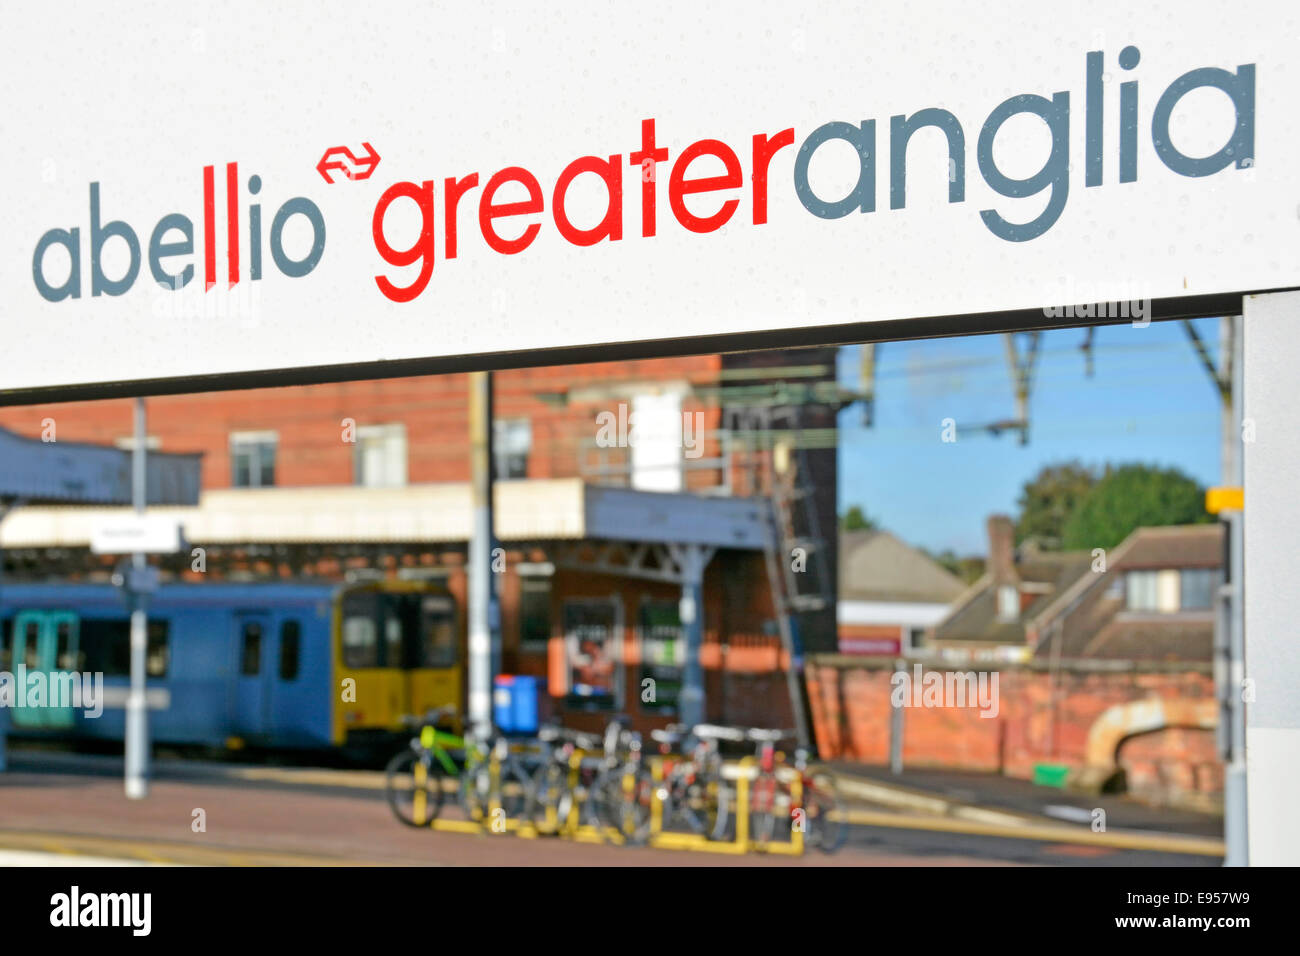 Abellio Greater Anglia brand name on railway station platform sign framing a Metro all stations train waiting to - Stock Image